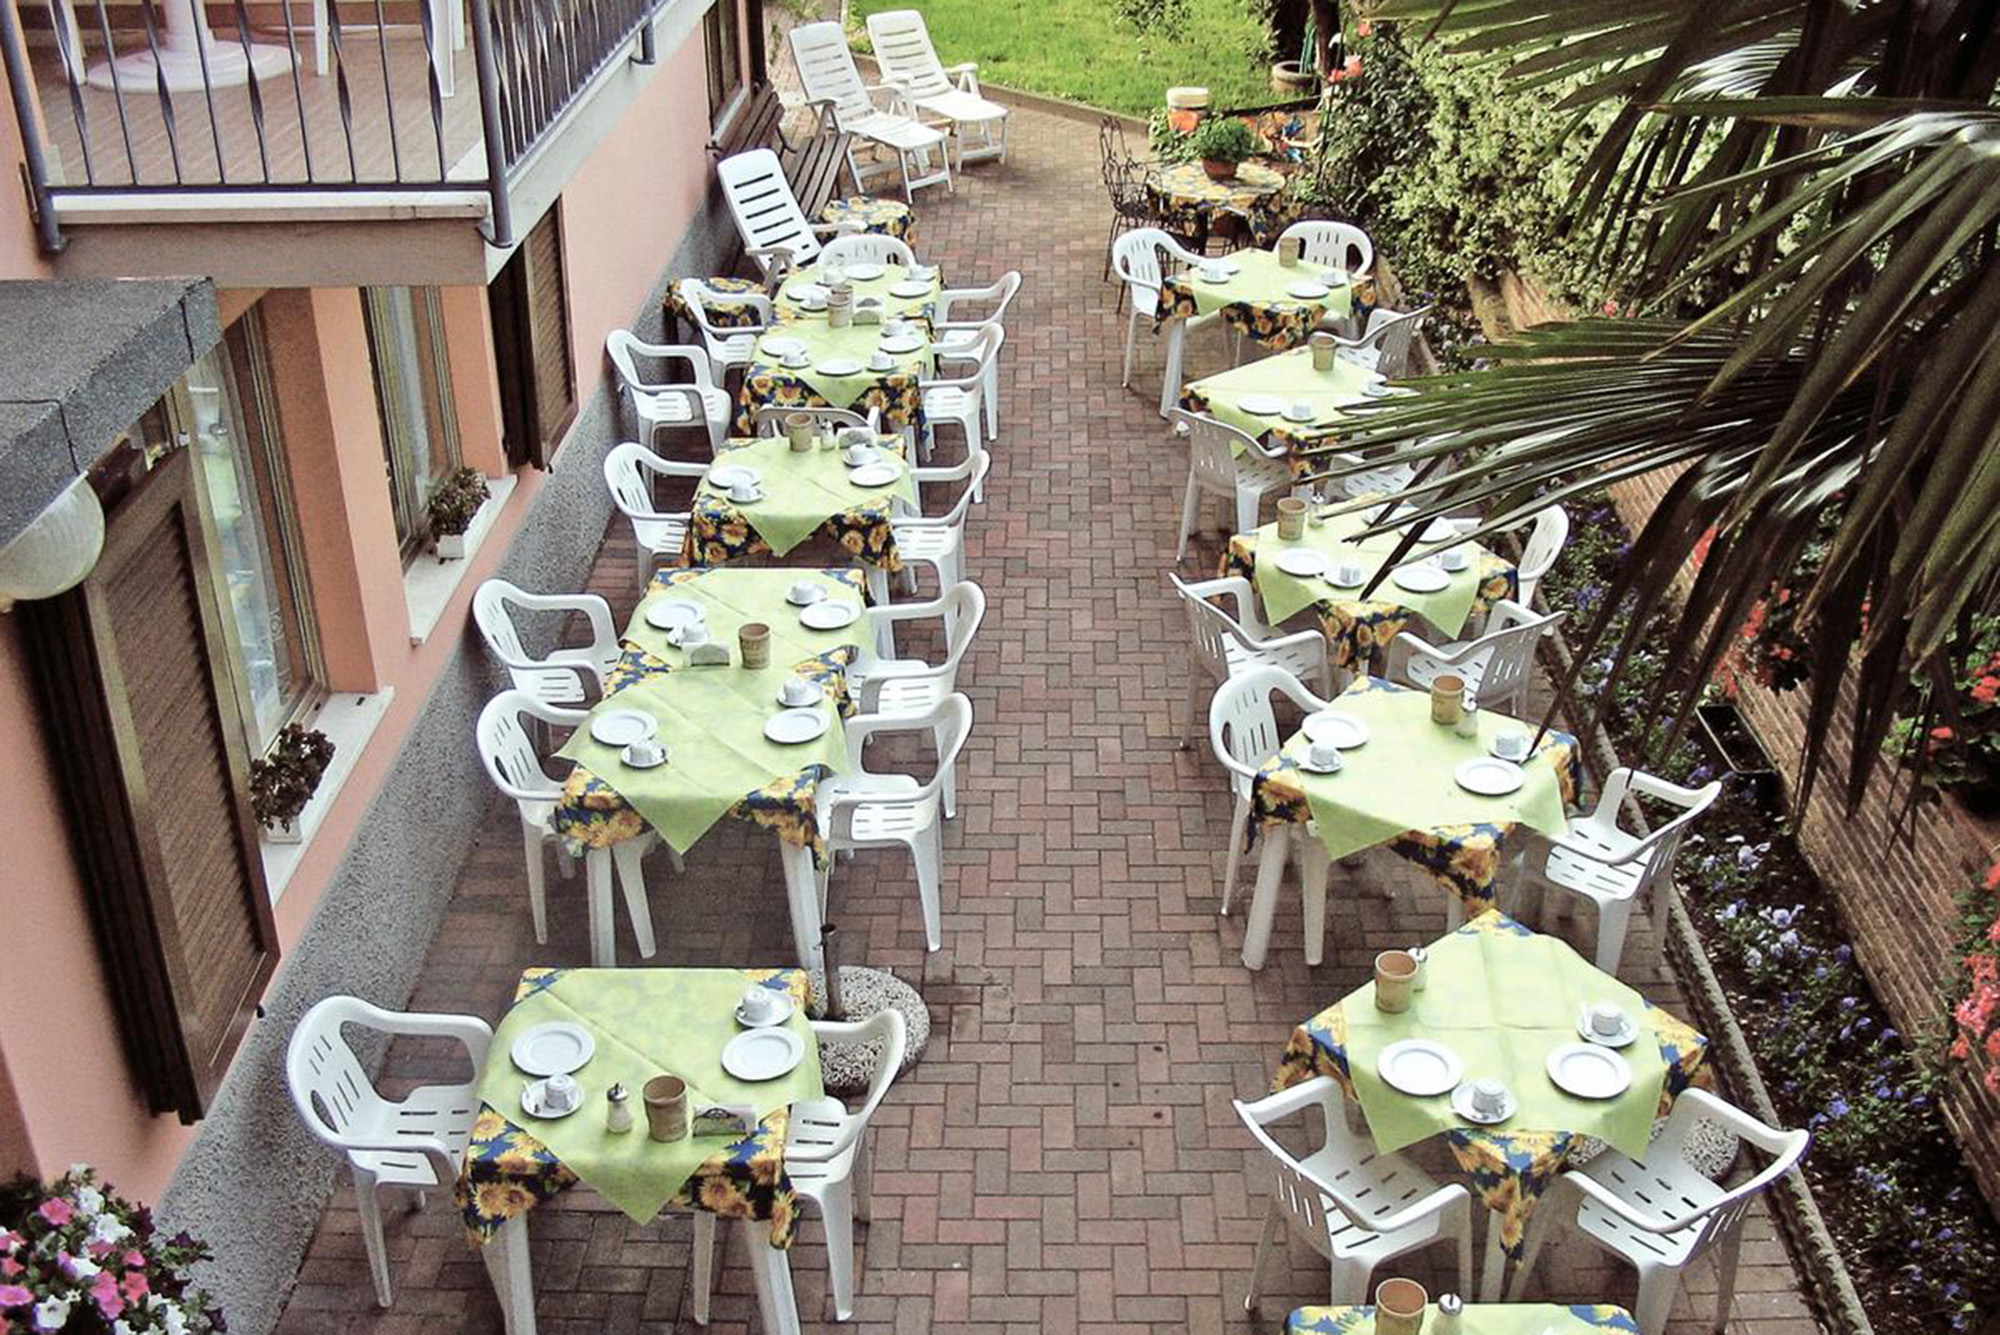 Outdoor terrace is the best to enjoy great sunny weather